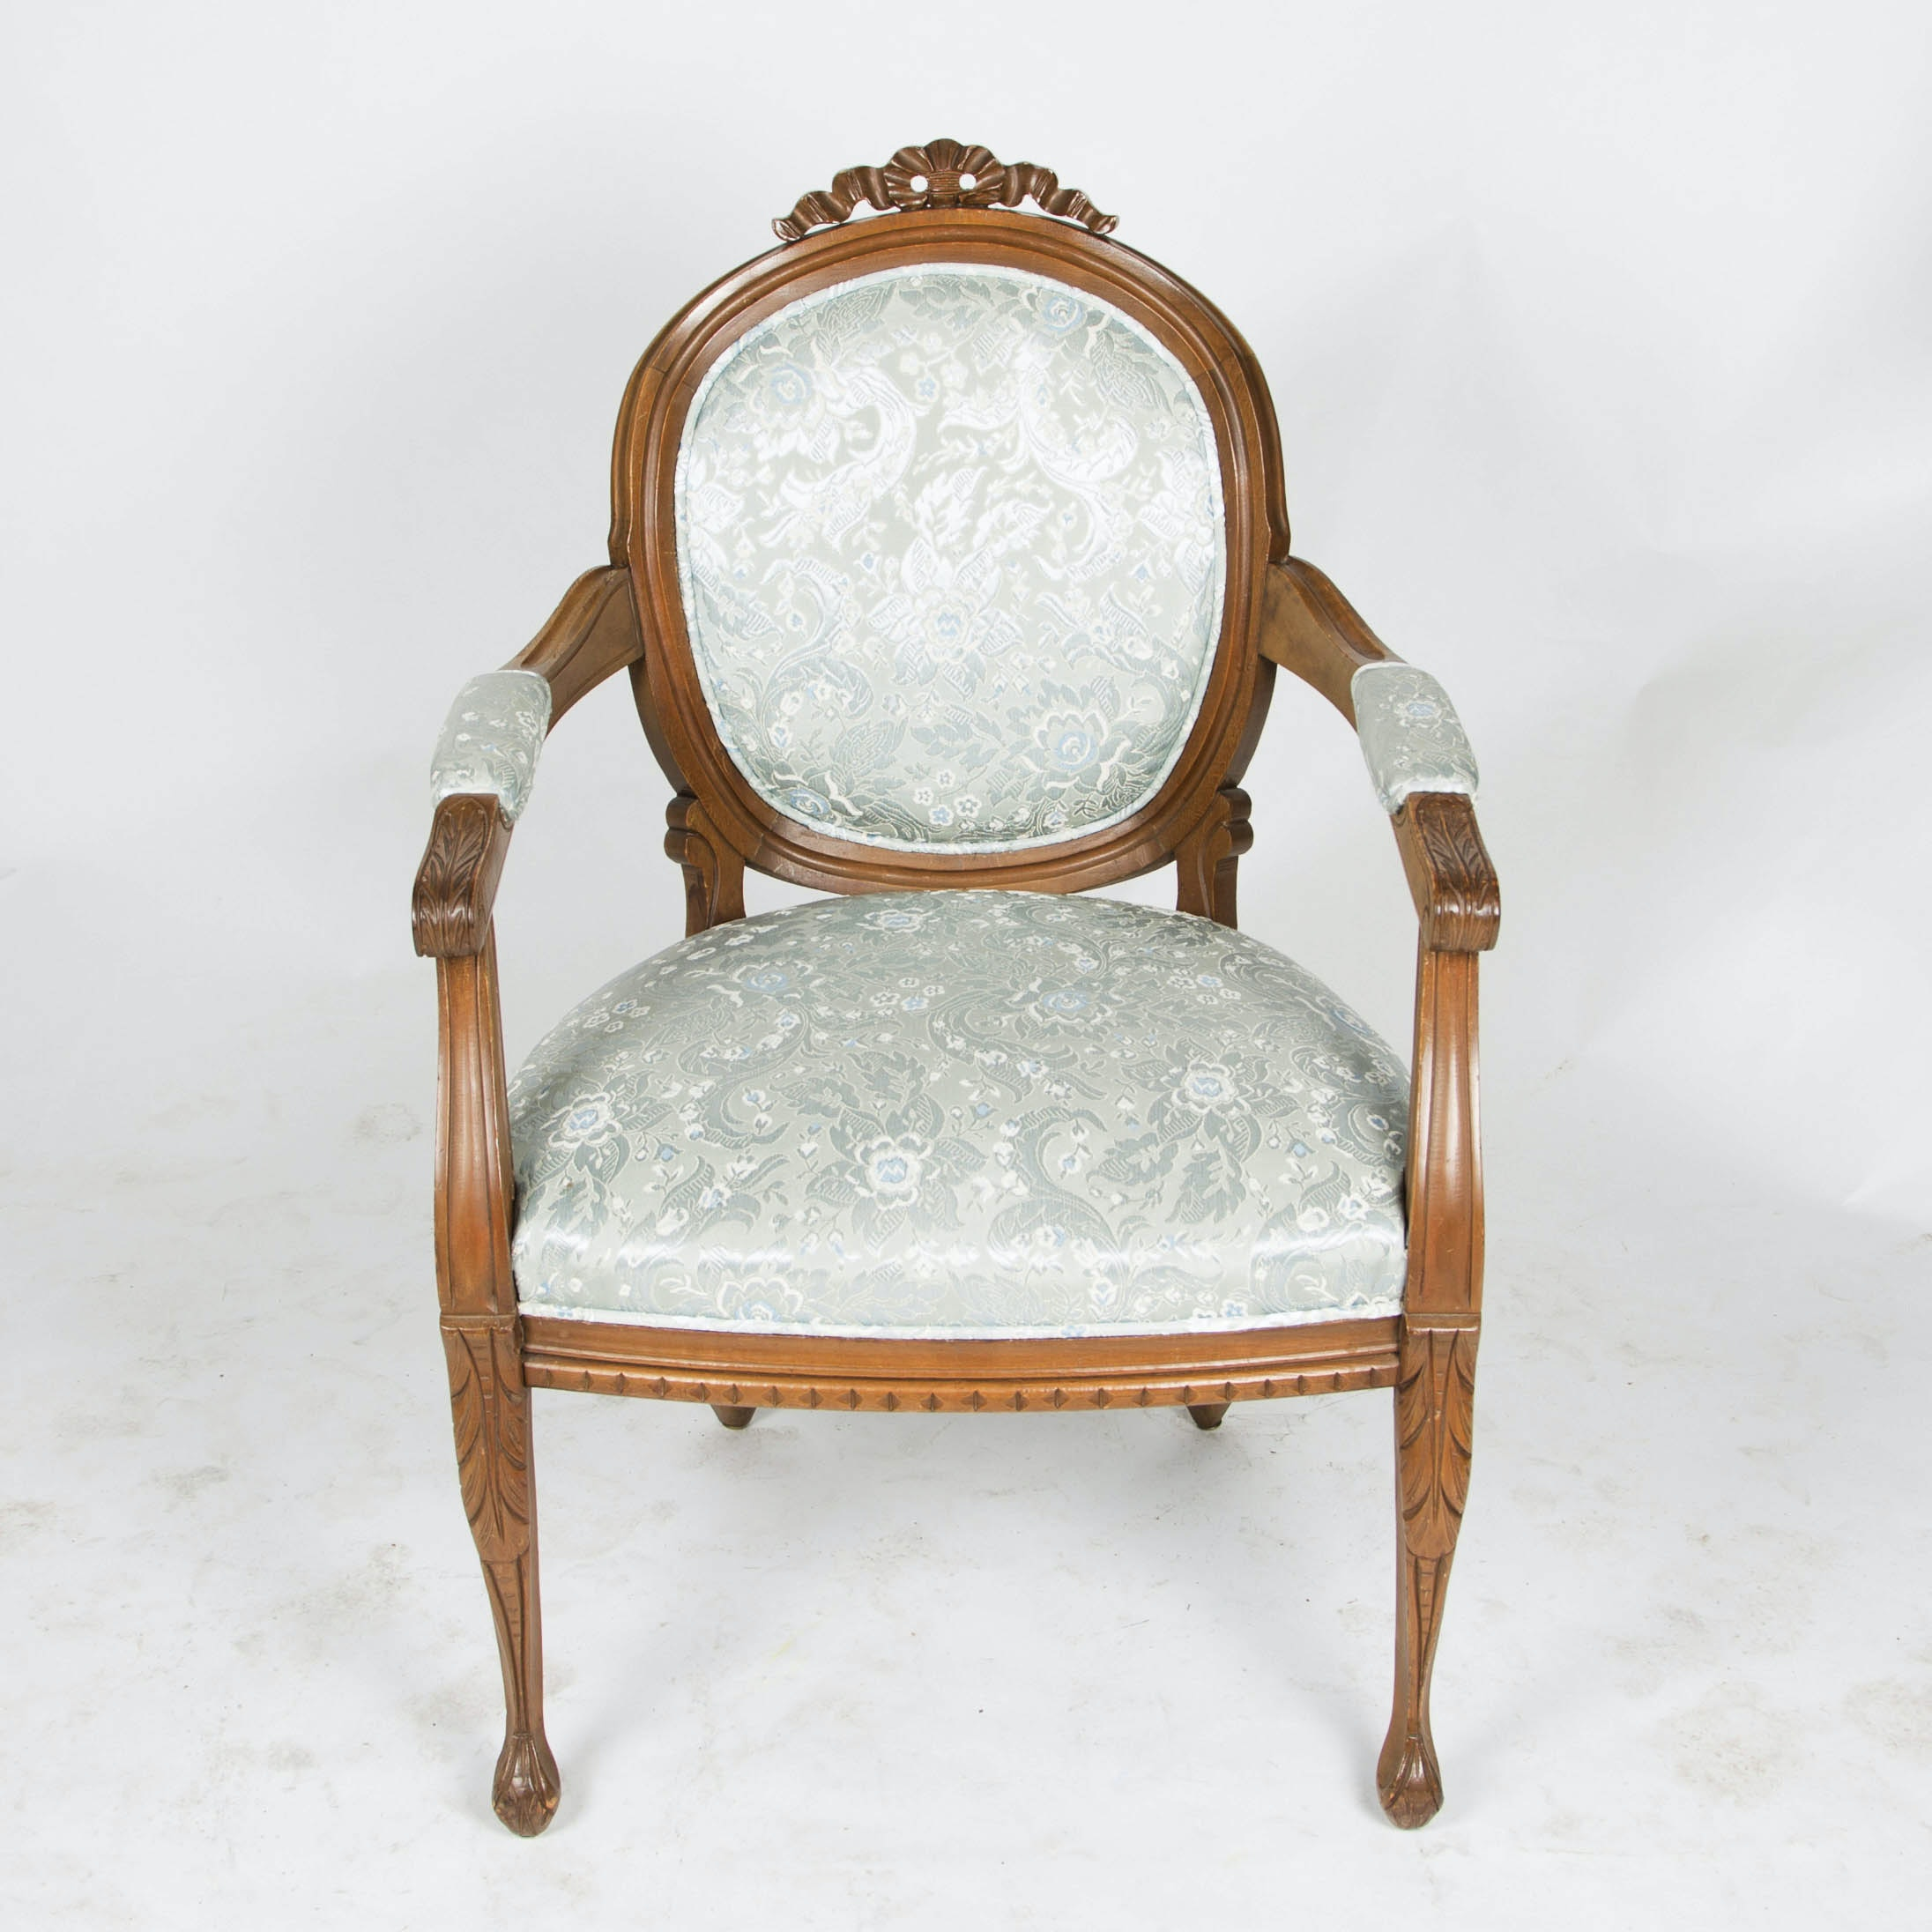 Victorian Style Oval Back Fauteuil